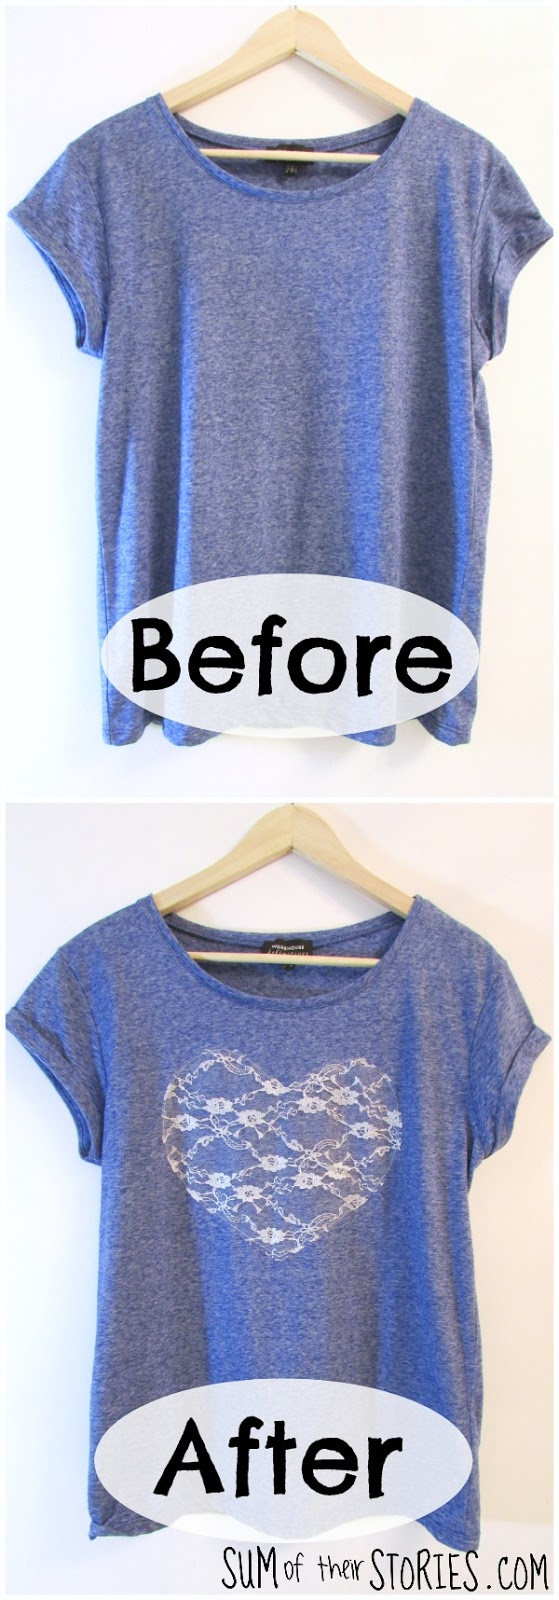 Lace Heart T shirt refashion